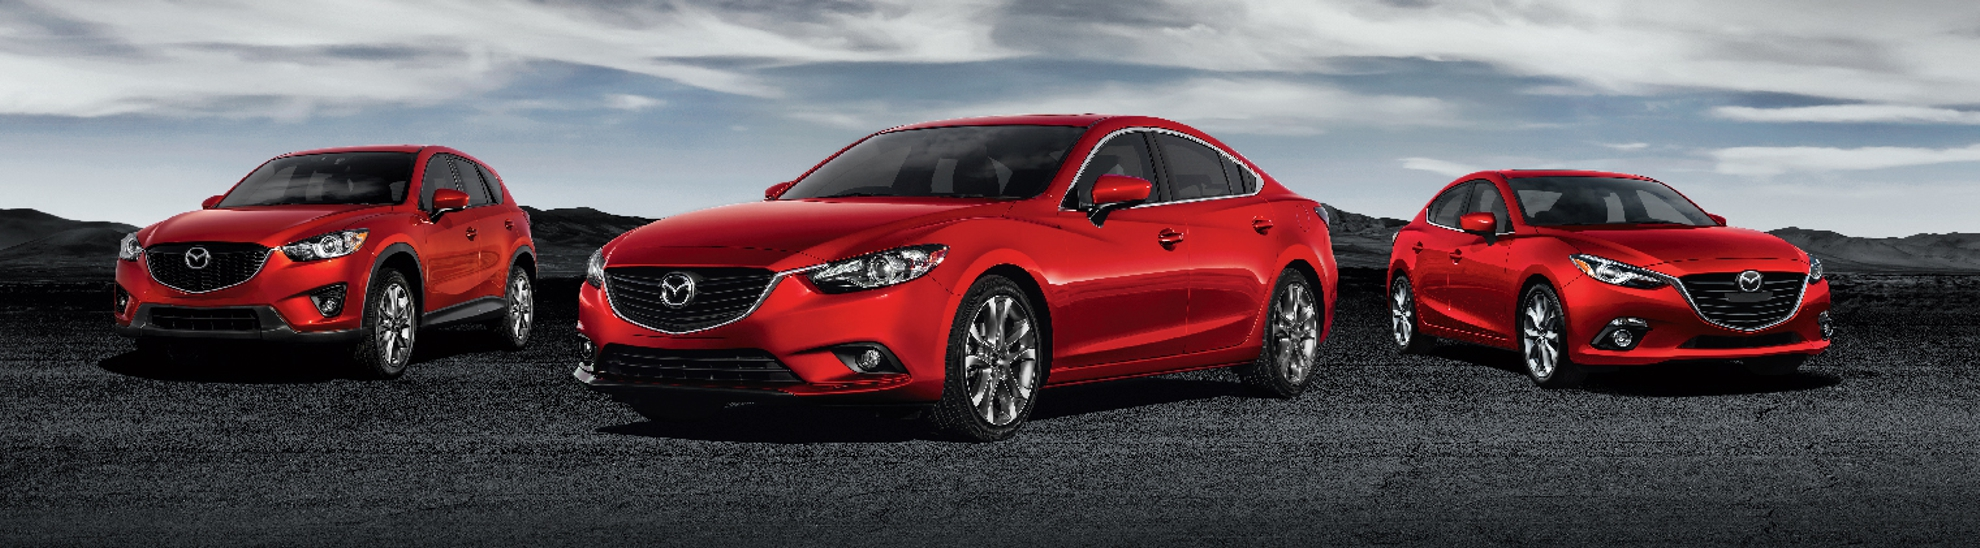 Mazda-South-Africa